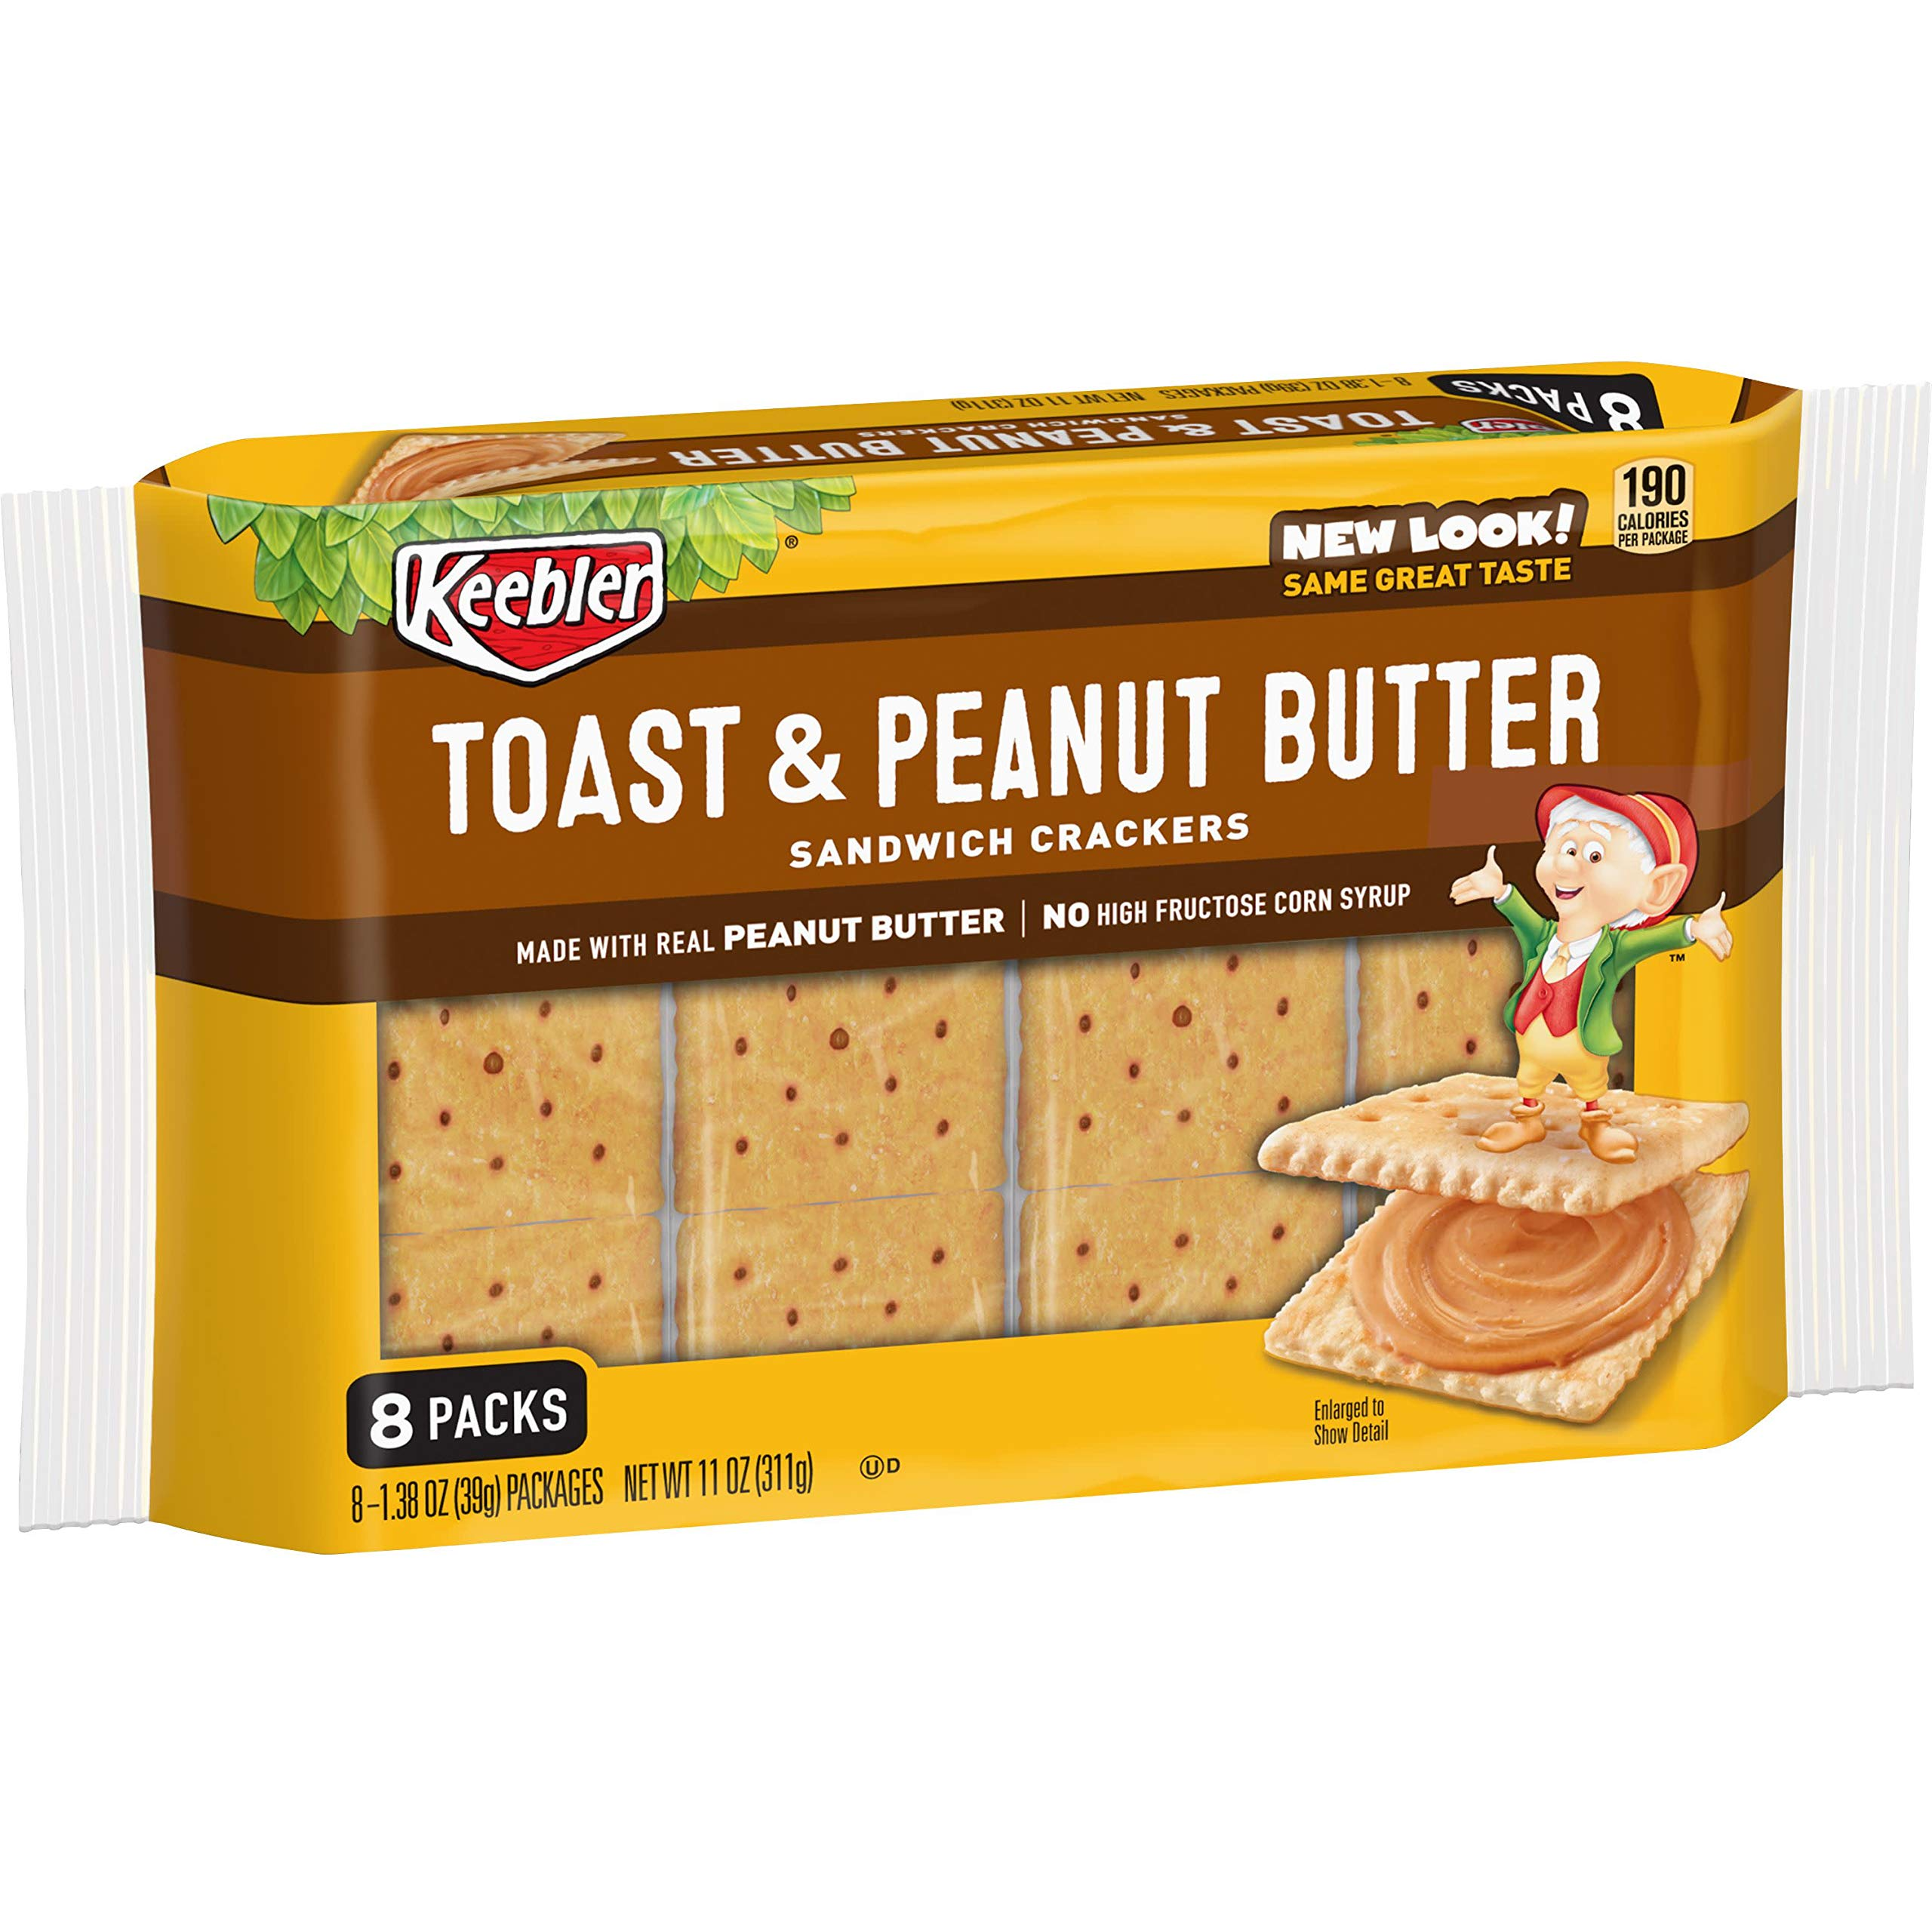 Keebler Toast and Peanut Butter Sandwich Crackers, Single Serve, 1.38 oz Packages(8 Count)(Pack of 12) by Keebler